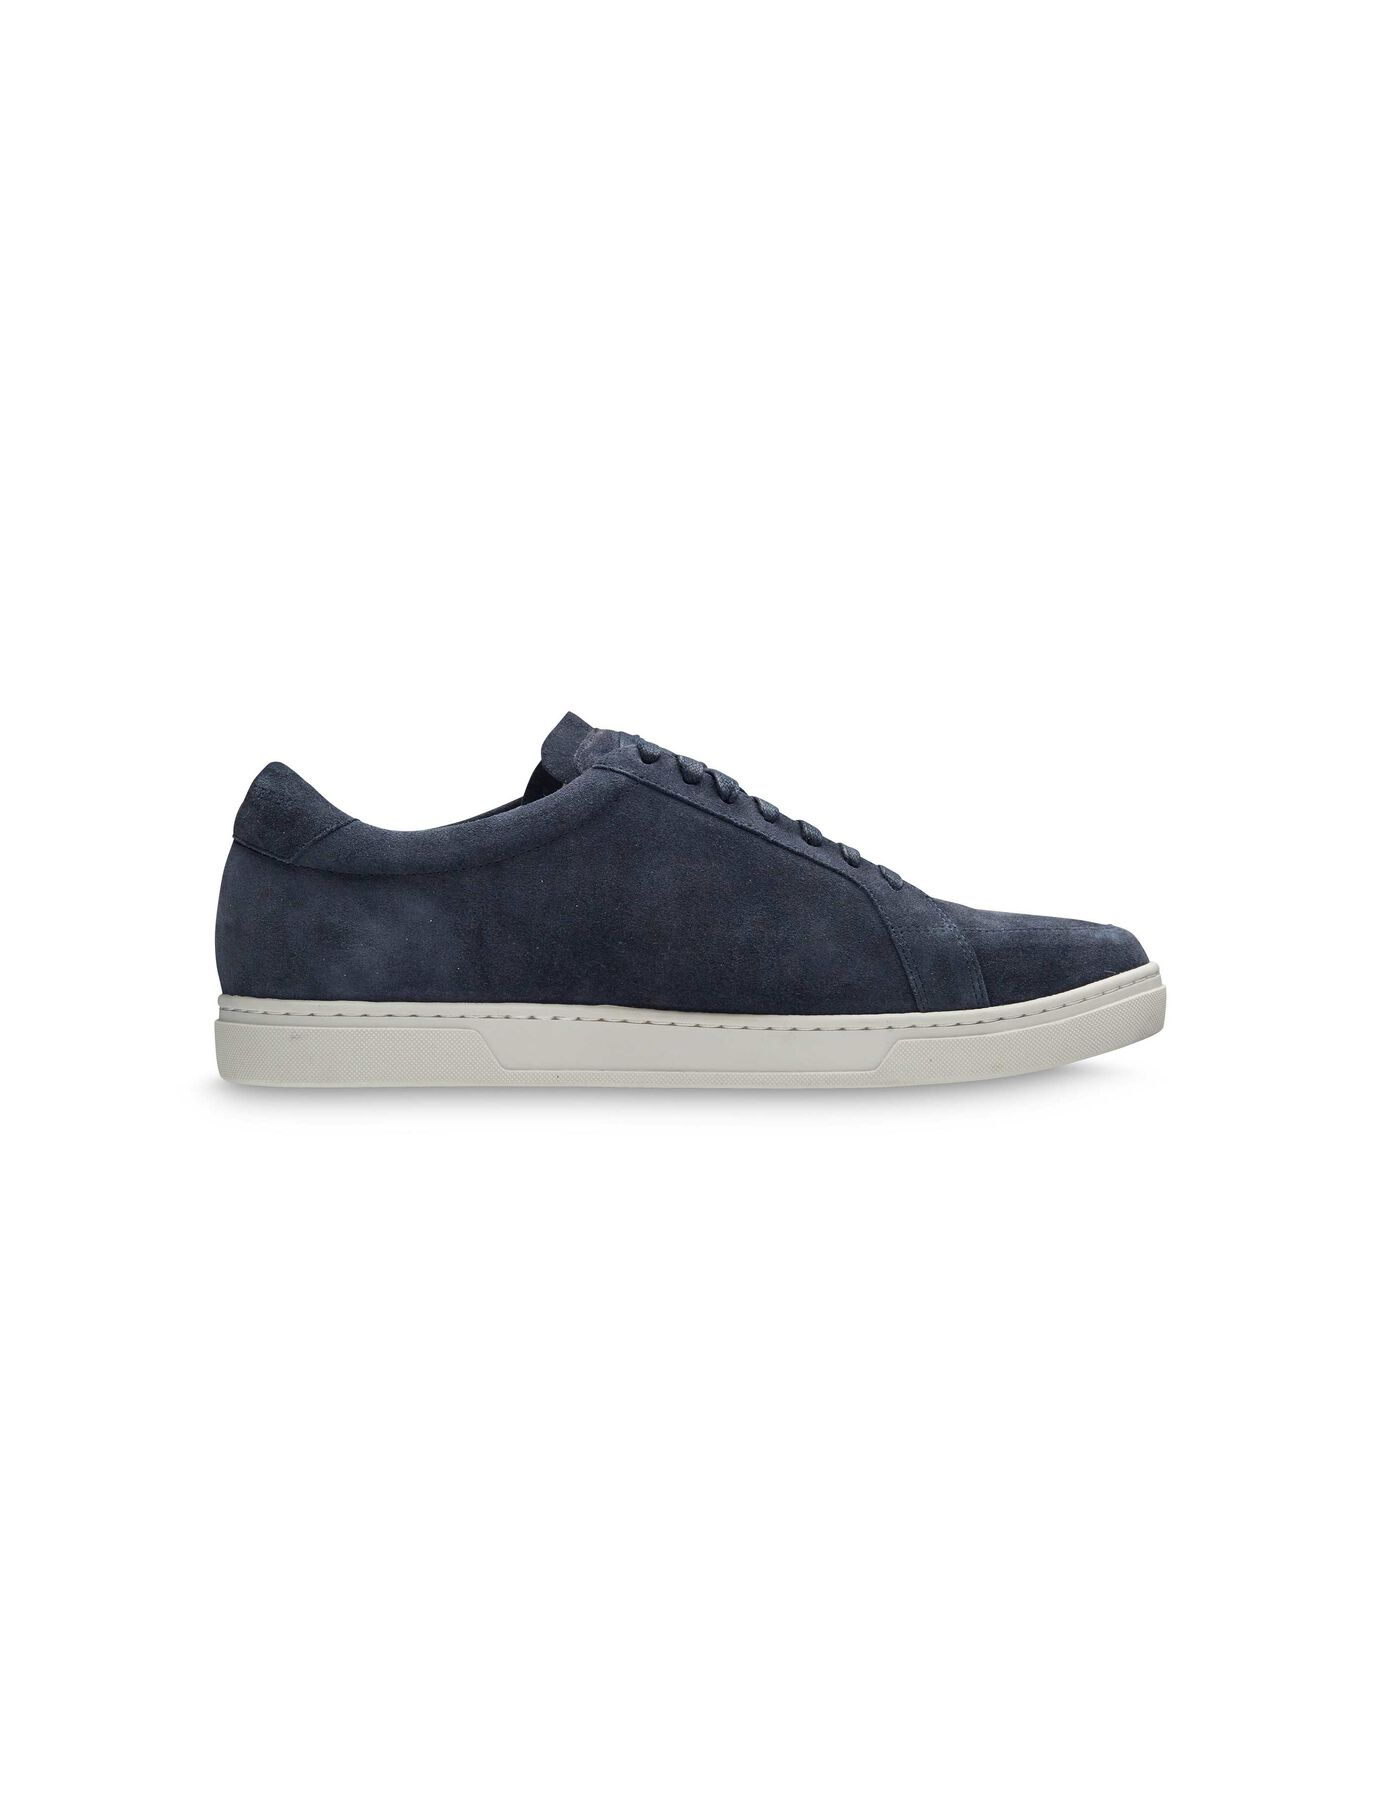 ARNE S SNEAKER in Blue function from Tiger of Sweden